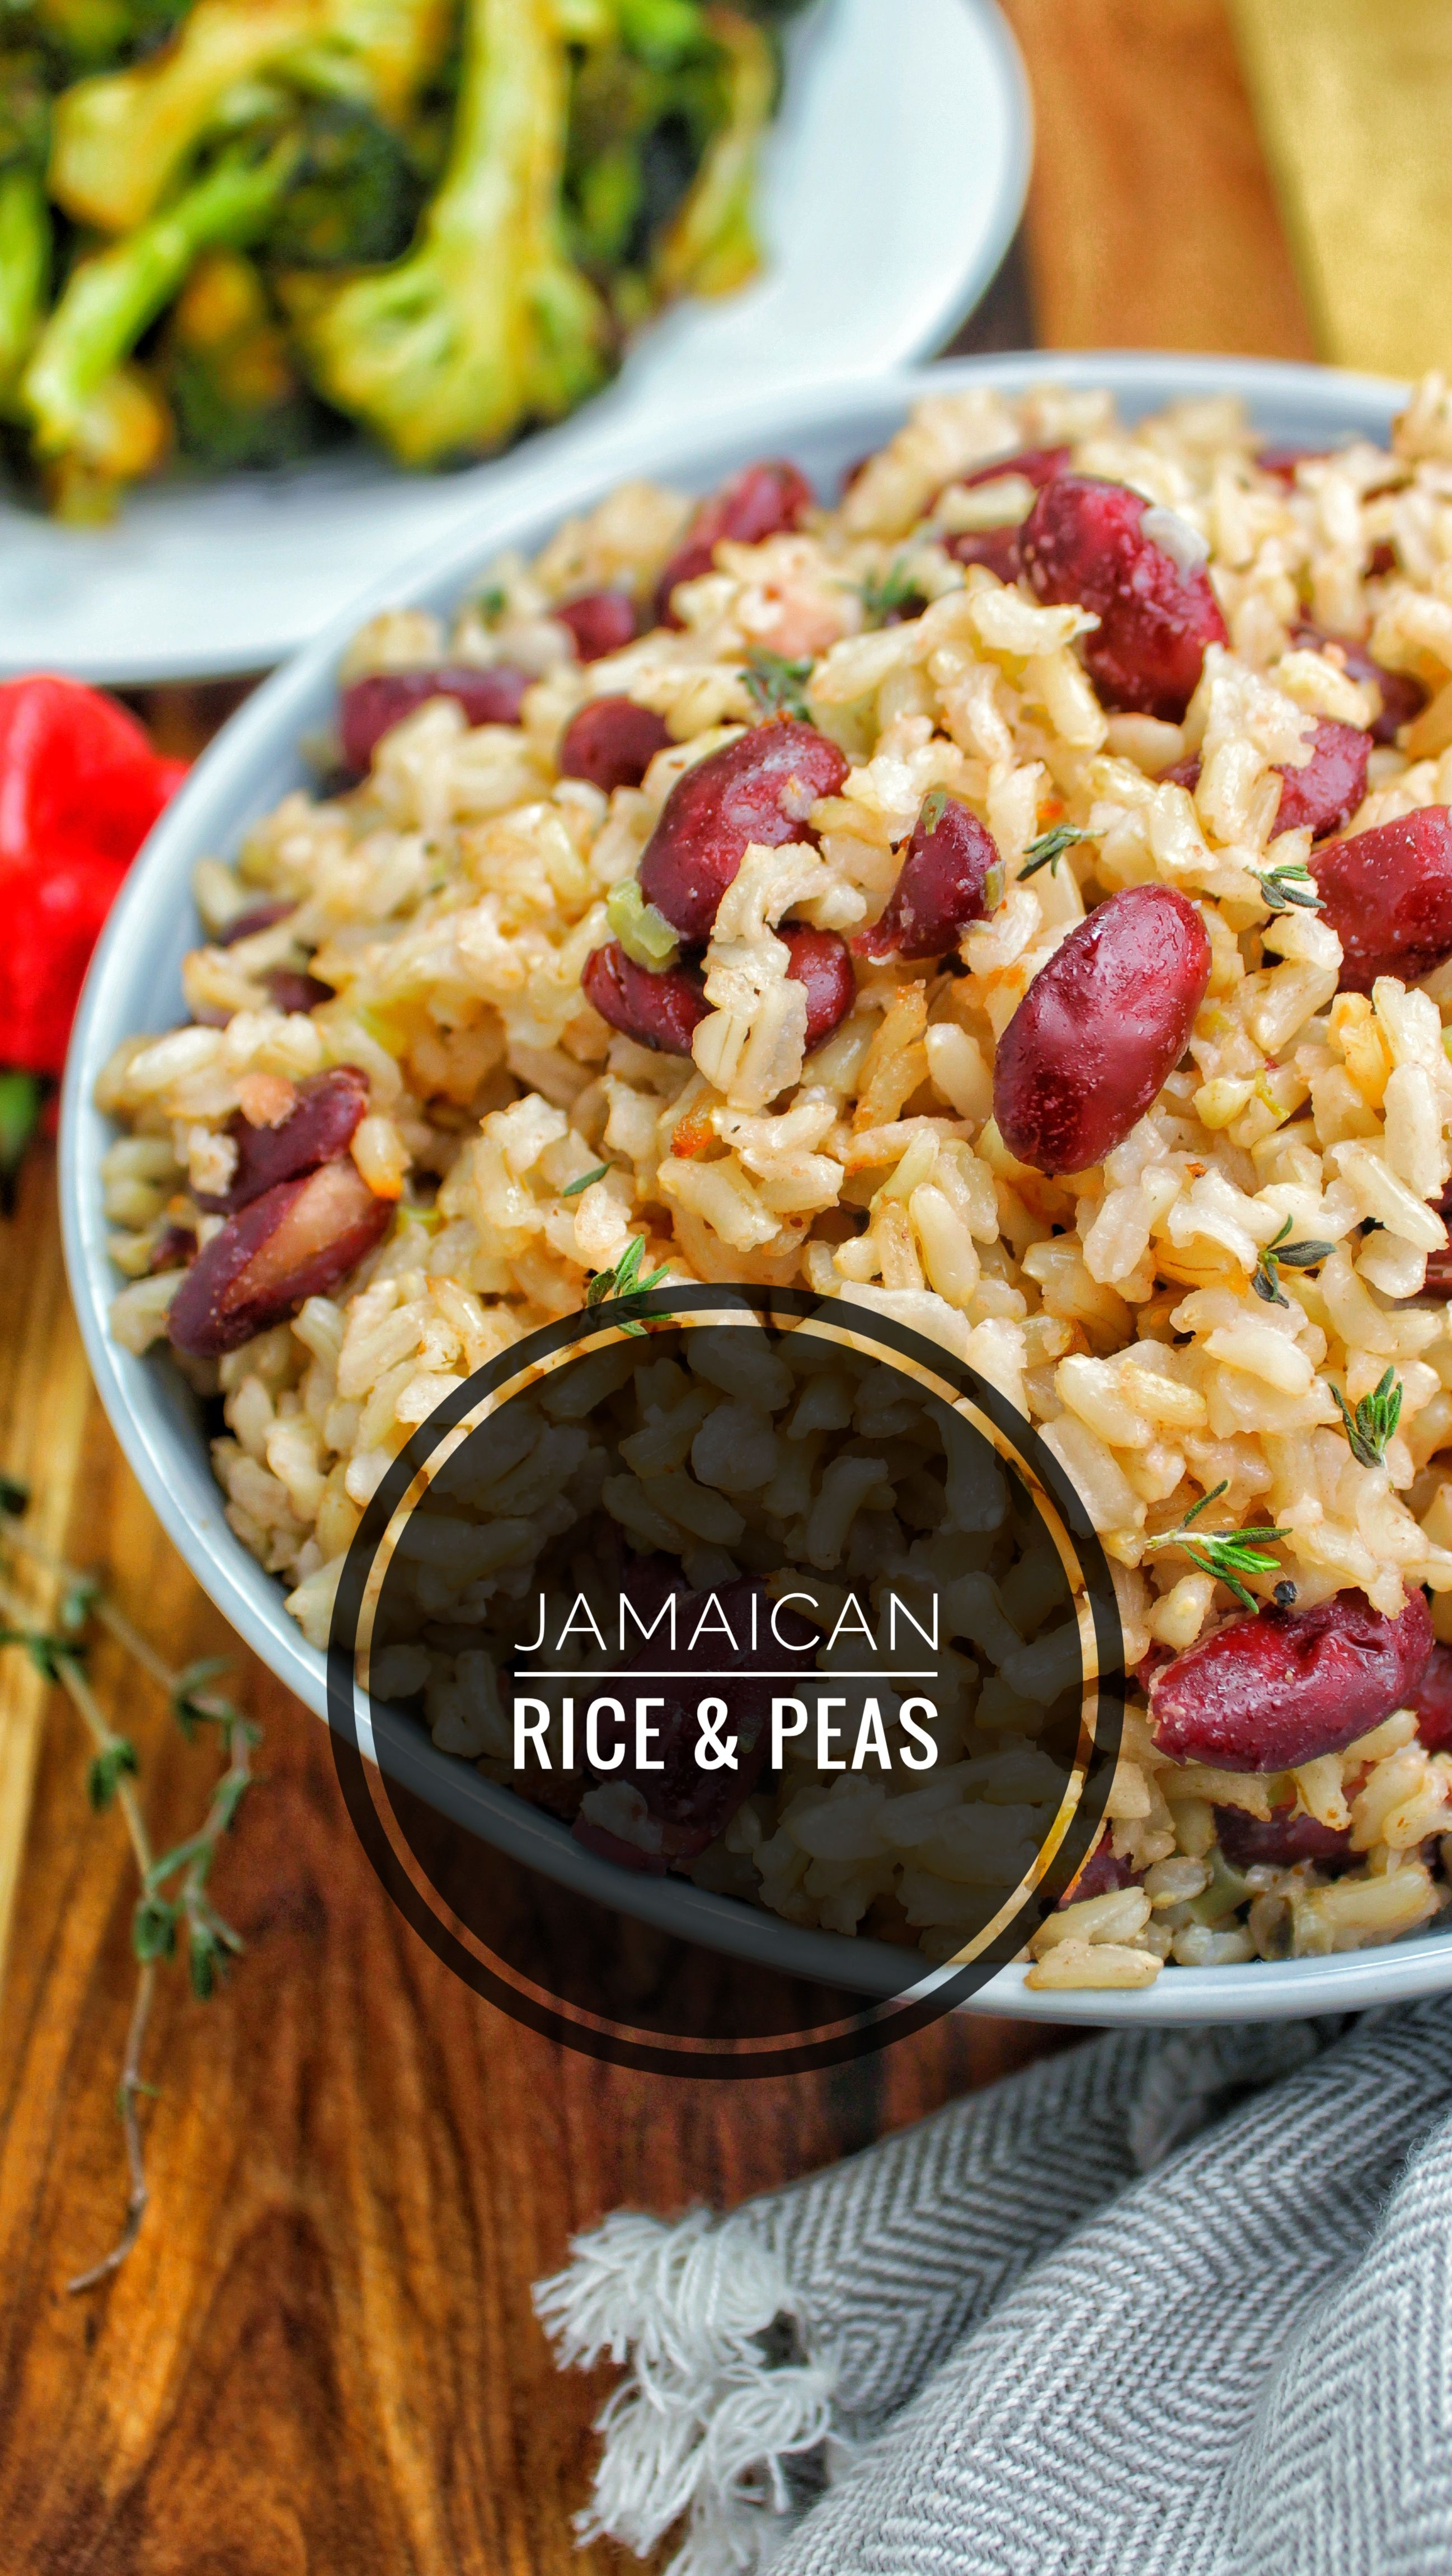 Add some Caribbean flavor to your next meal with this Jamaican rice & peas.  The rice is cooked in coconut milk with the beans and scotch bonnet pepper.  Yum!   Follow the link below for the full recipe and nutrition information.